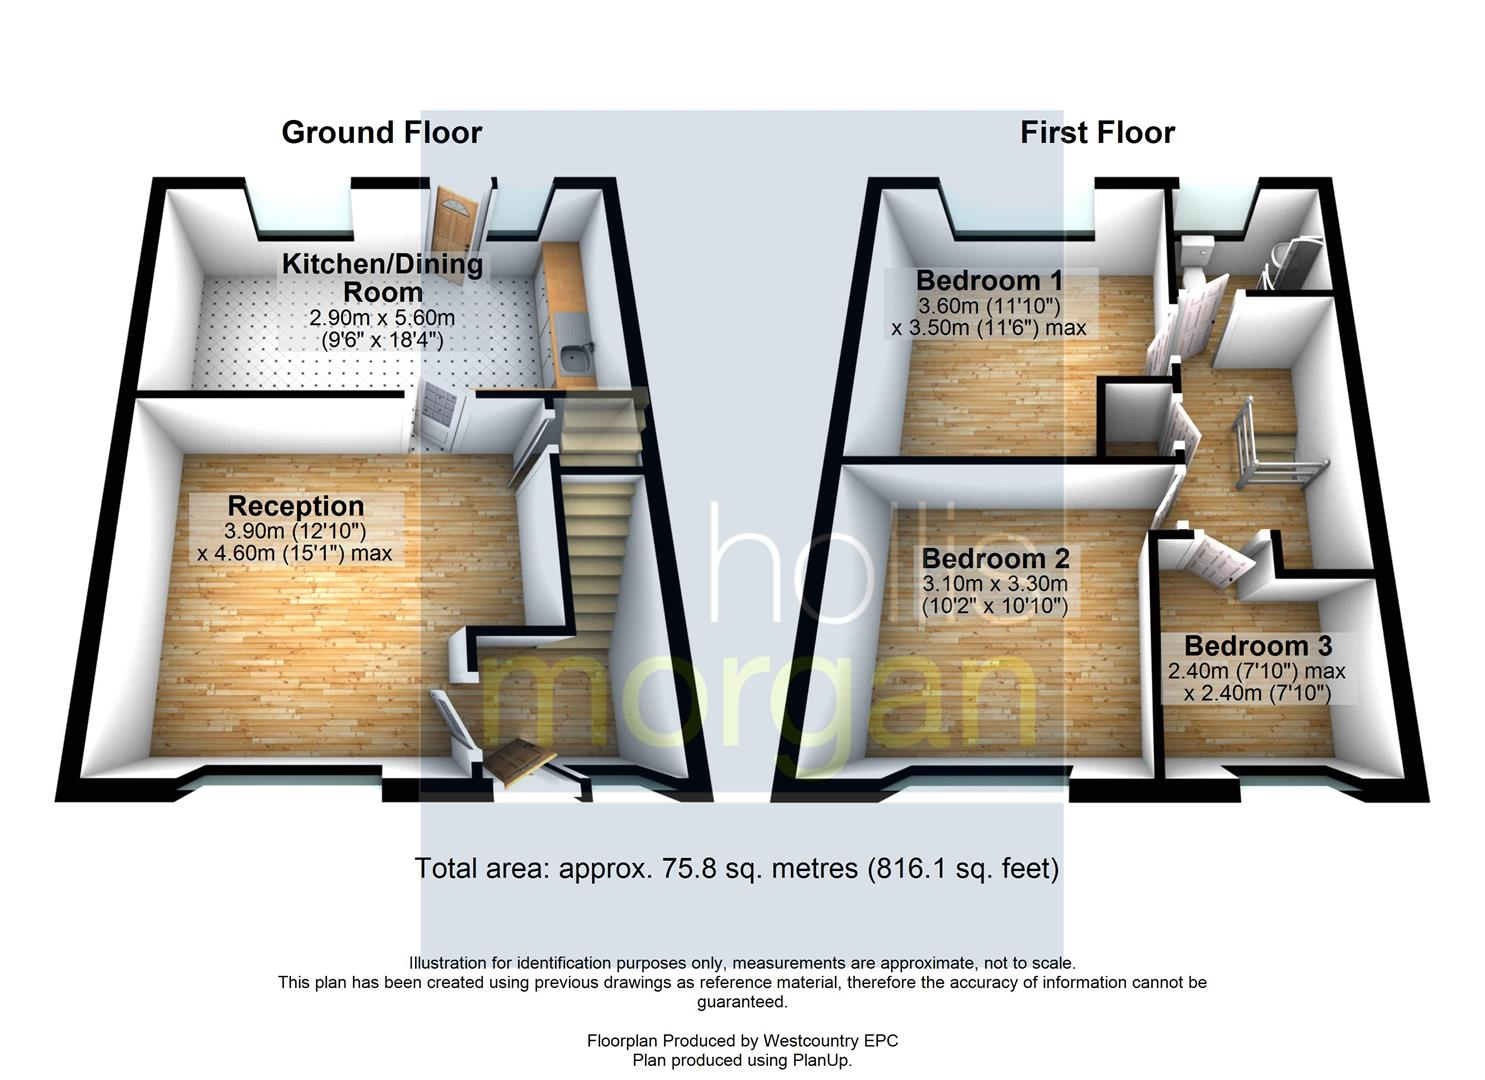 Floorplans For HOUSE FOR BASIC UPDATING - REDUCED PRICE FOR AUCTION